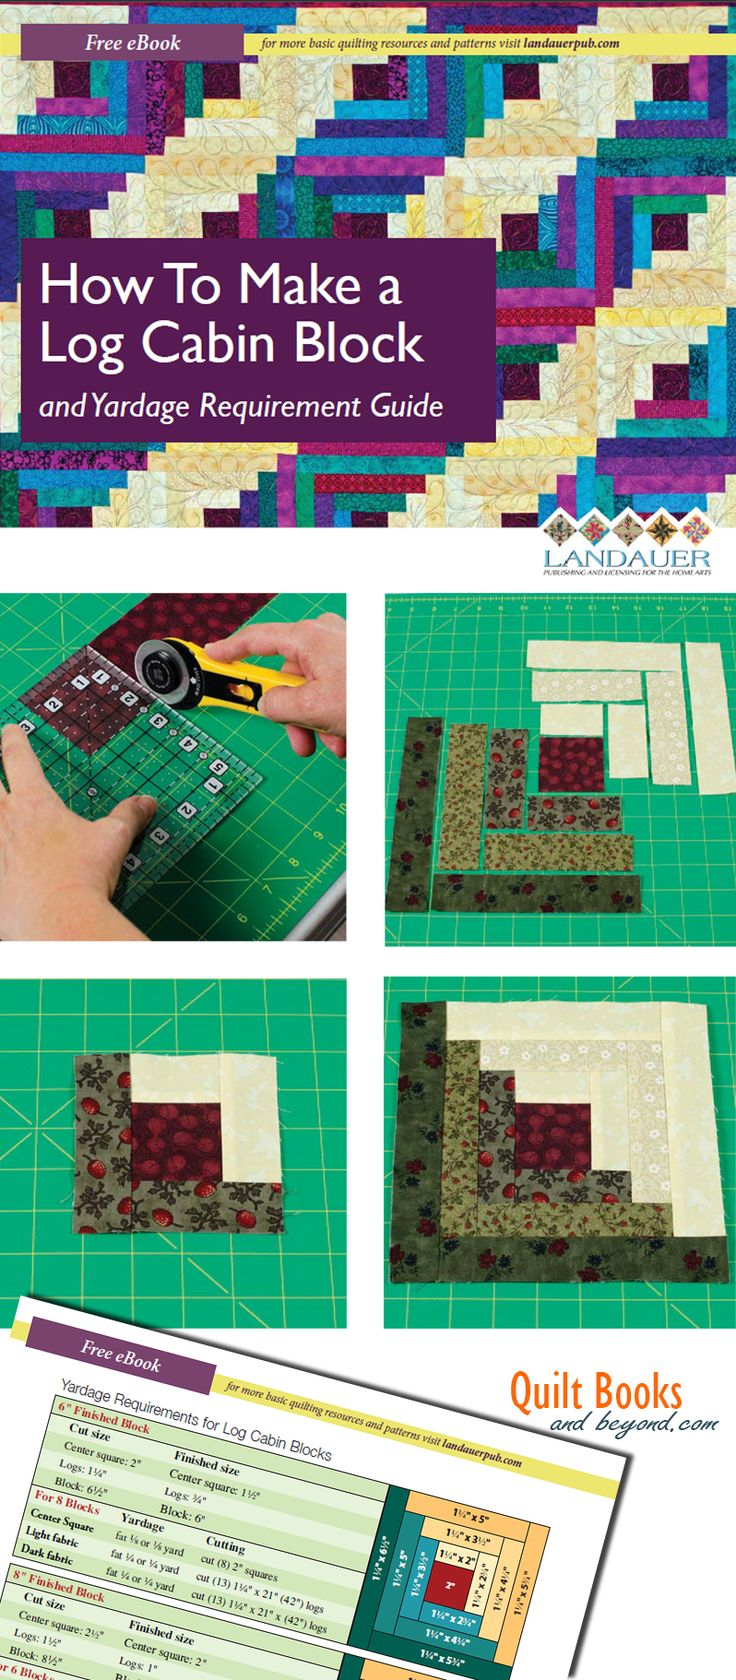 Log Cabin Quilt Block Guide Shows How To Make the Log Cabin Block PLUS Yardage Guidelines Chart | http://quiltbooksandbeyond.com/log-cabin-quilt-block-guide-shows-make-log-cabin-block-plus-yardage-guidelines-chart/